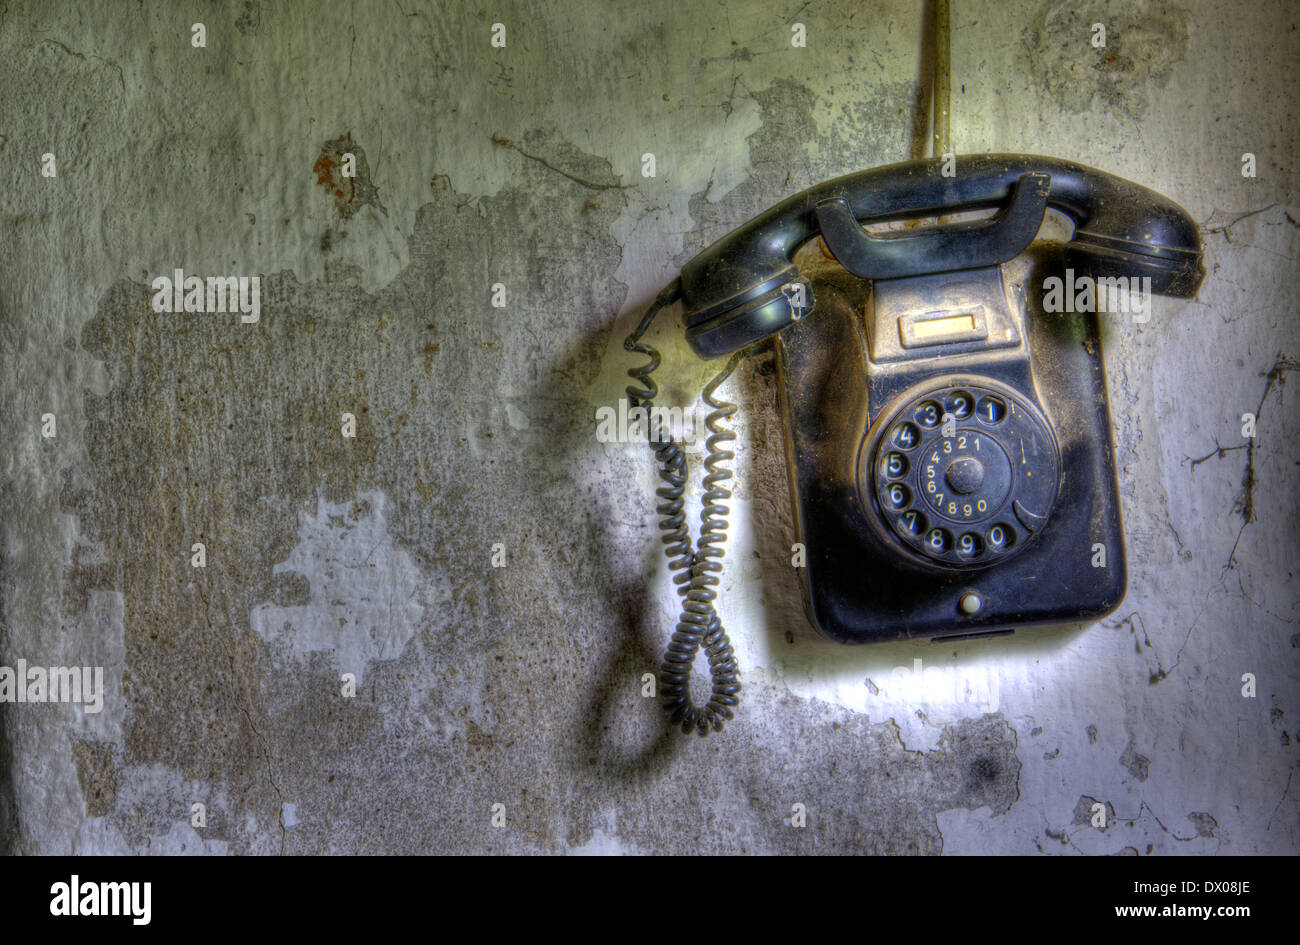 An old telephone. - Stock Image